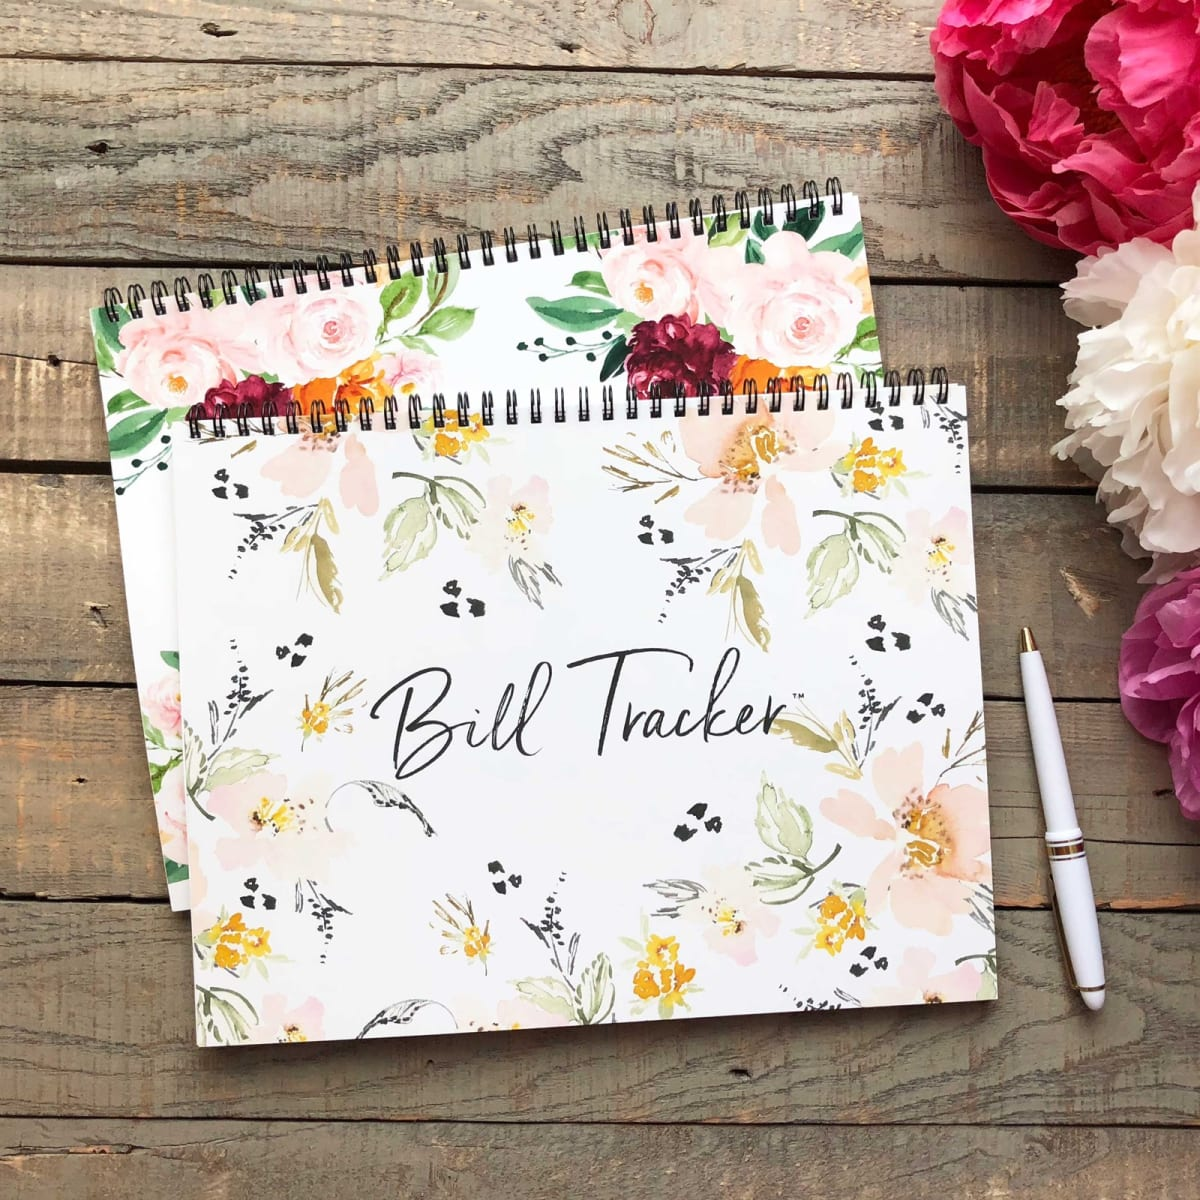 Bill Tracker™ Journal